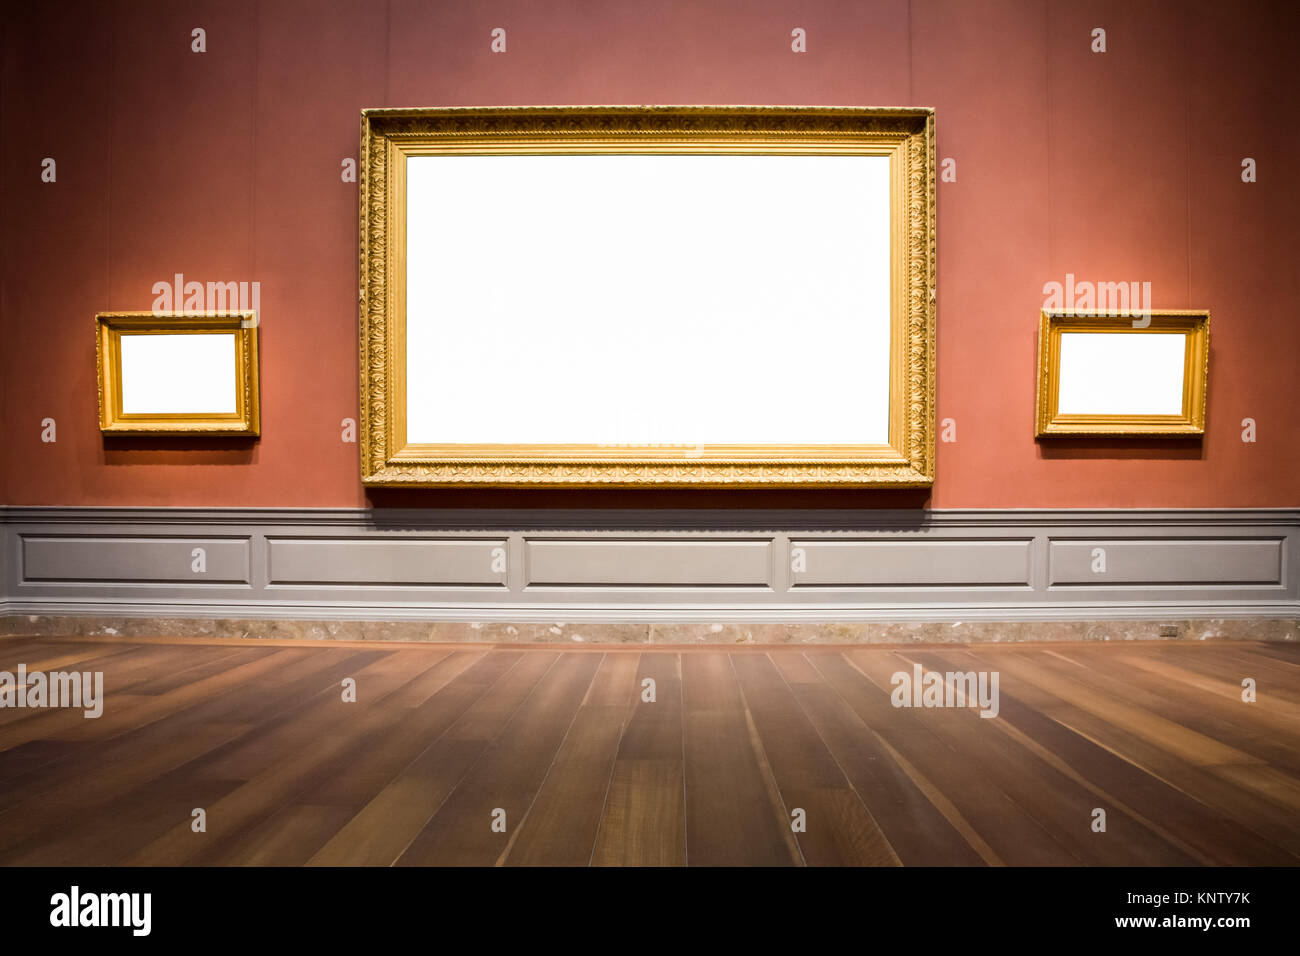 Three ornate picture frames art gallery museum exhibit blank white three ornate picture frames art gallery museum exhibit blank white isolated clipping path jeuxipadfo Gallery